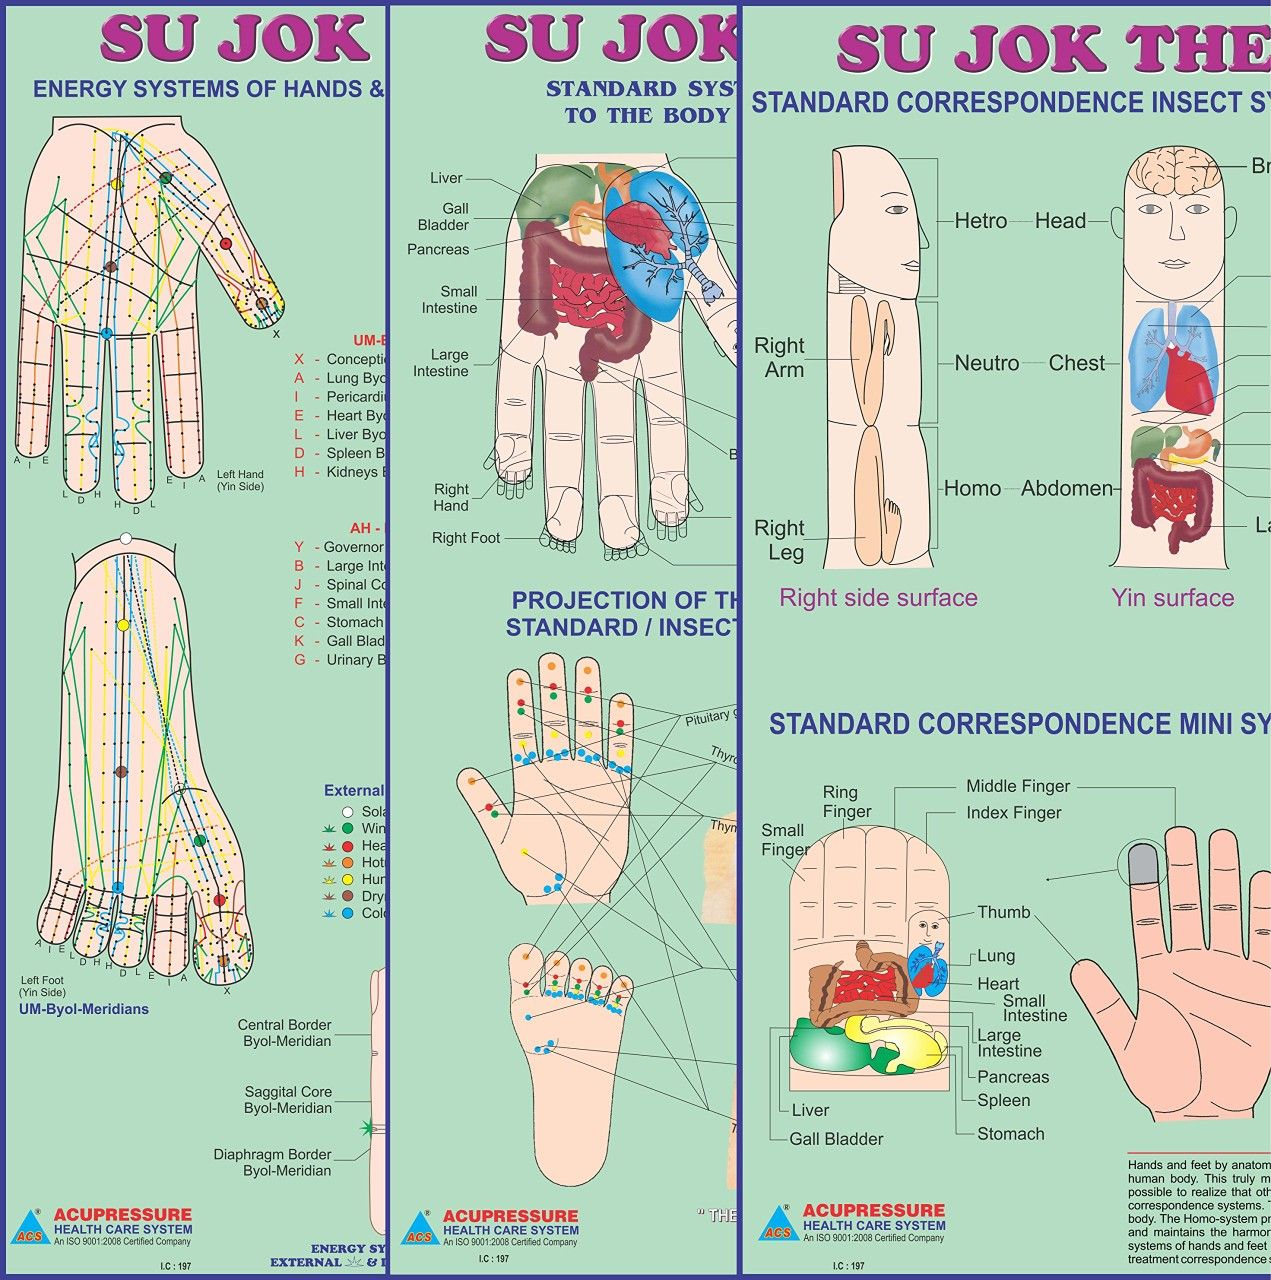 Pin by YourPathToBe on SuJok Therapy in 2020   Acupressure ...